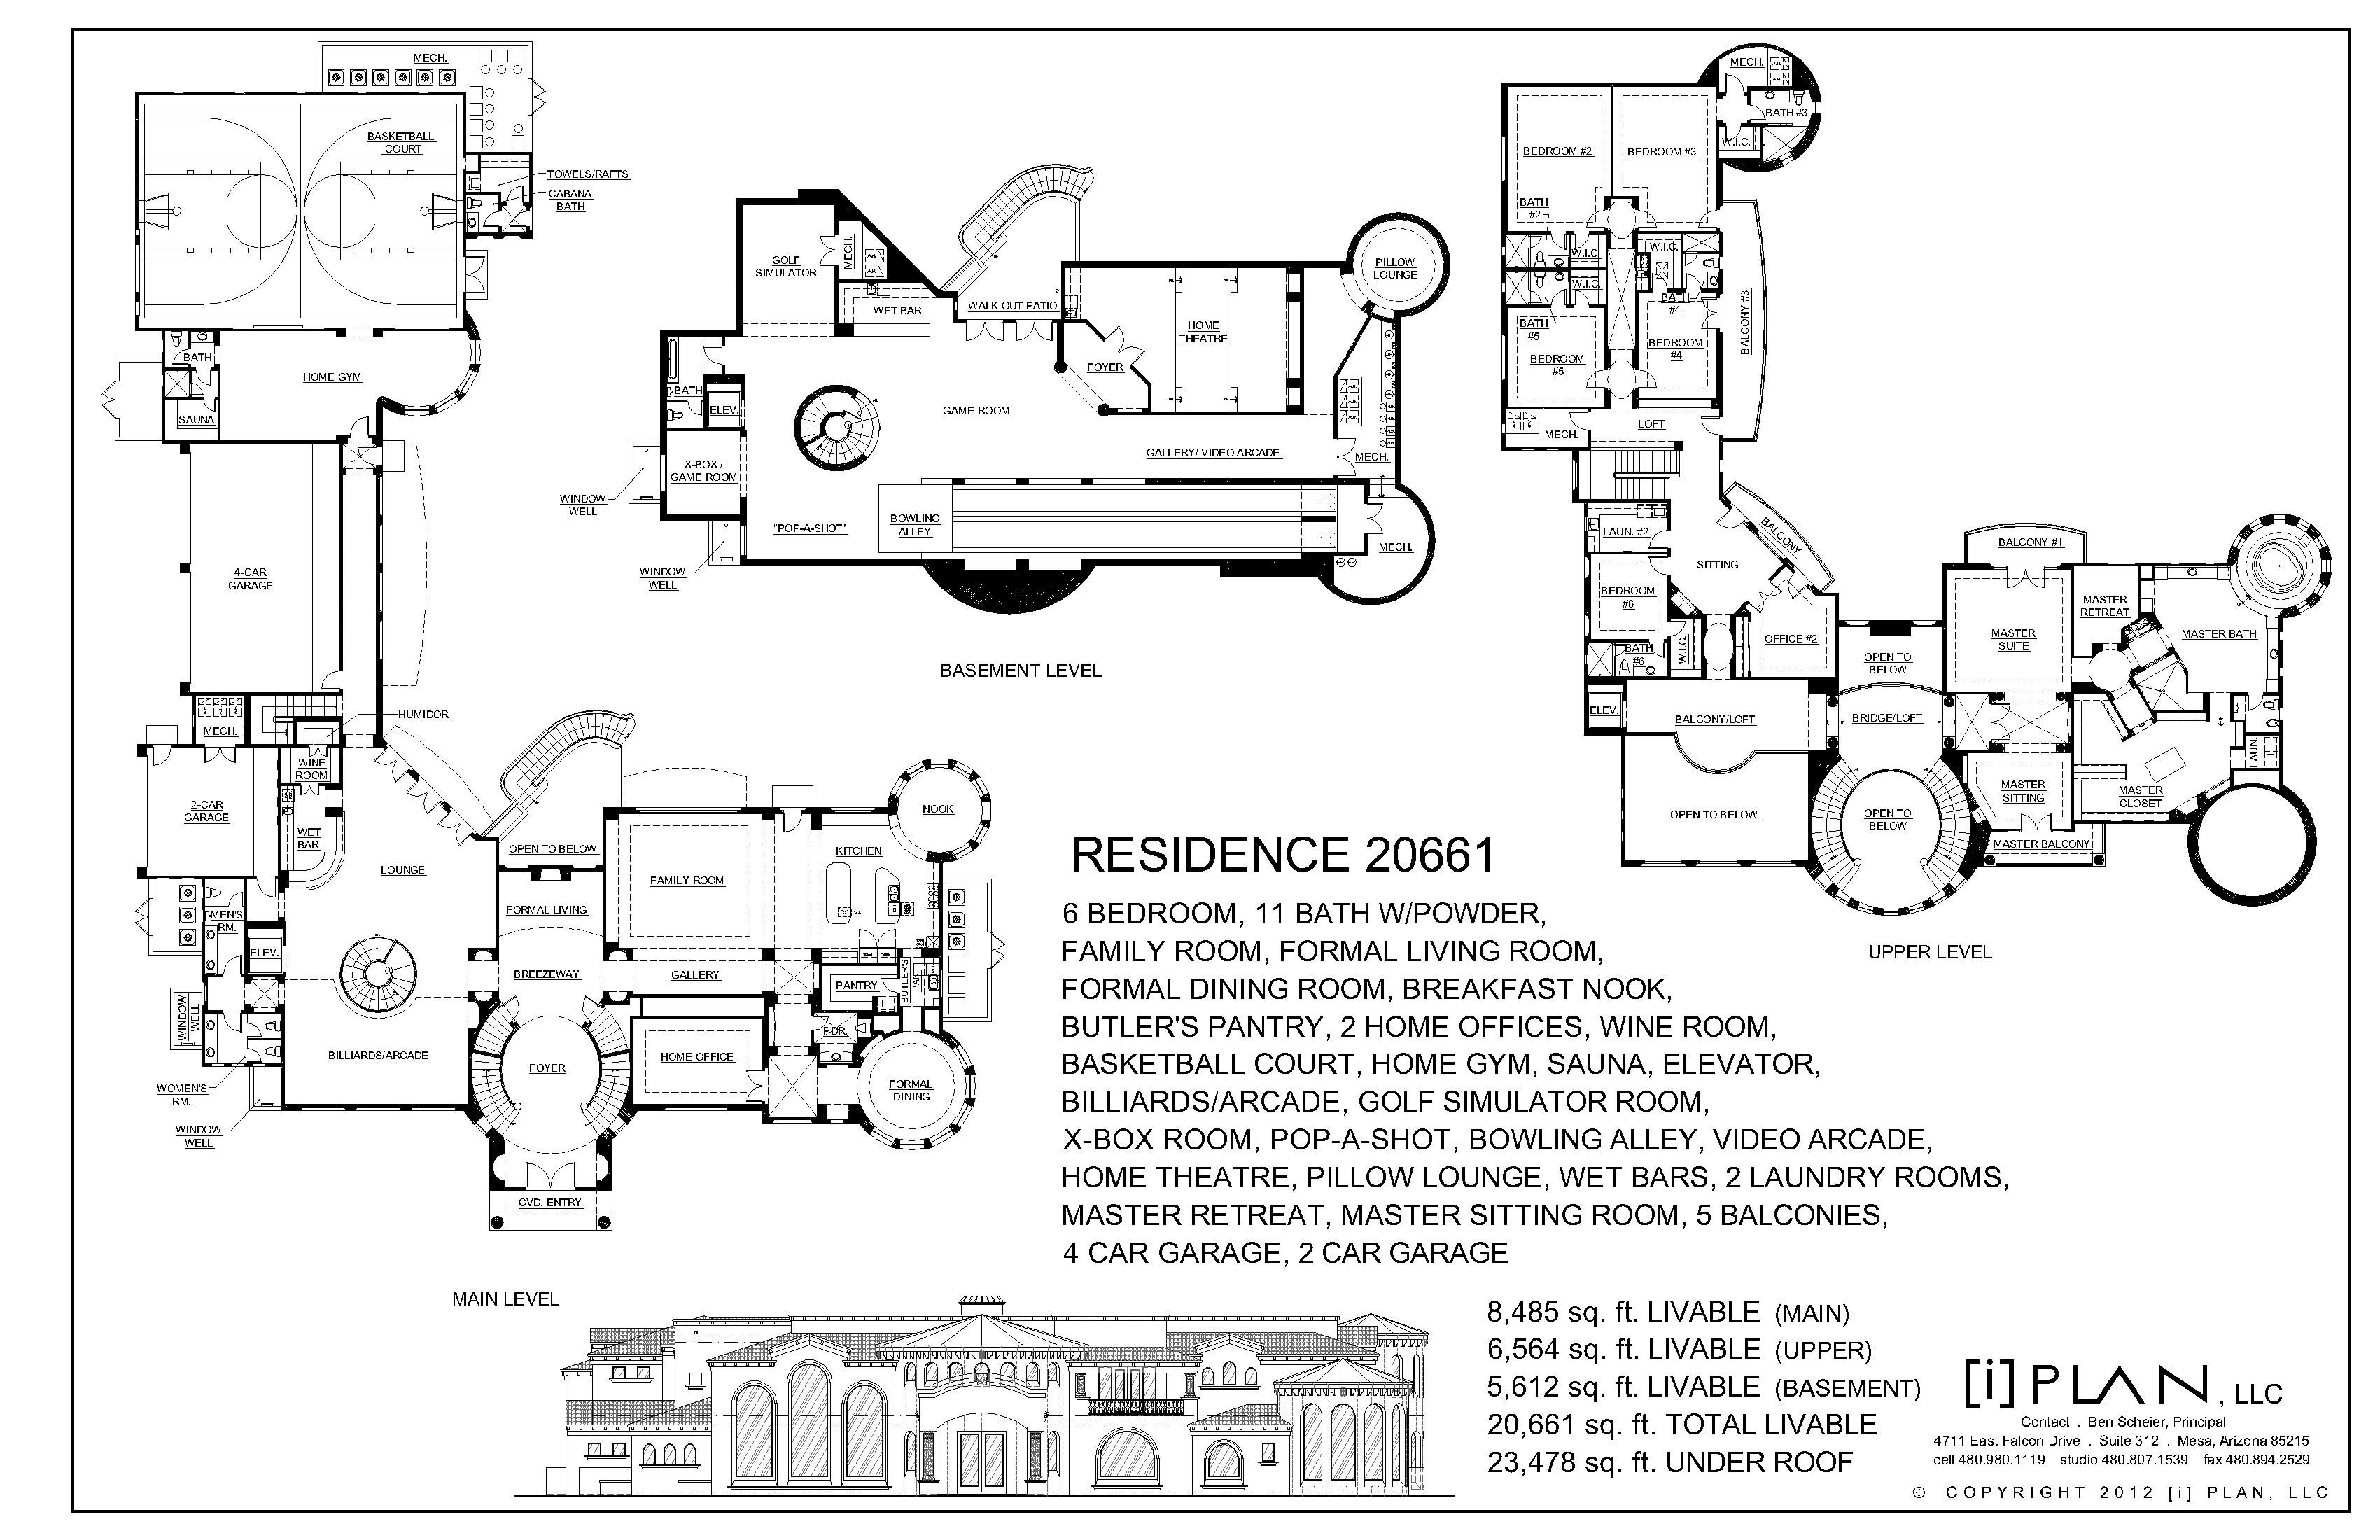 20 661 Square Foot Arizona Mansion Floor Plan As Shown Floor Plans Mansion Floor Plan How To Plan